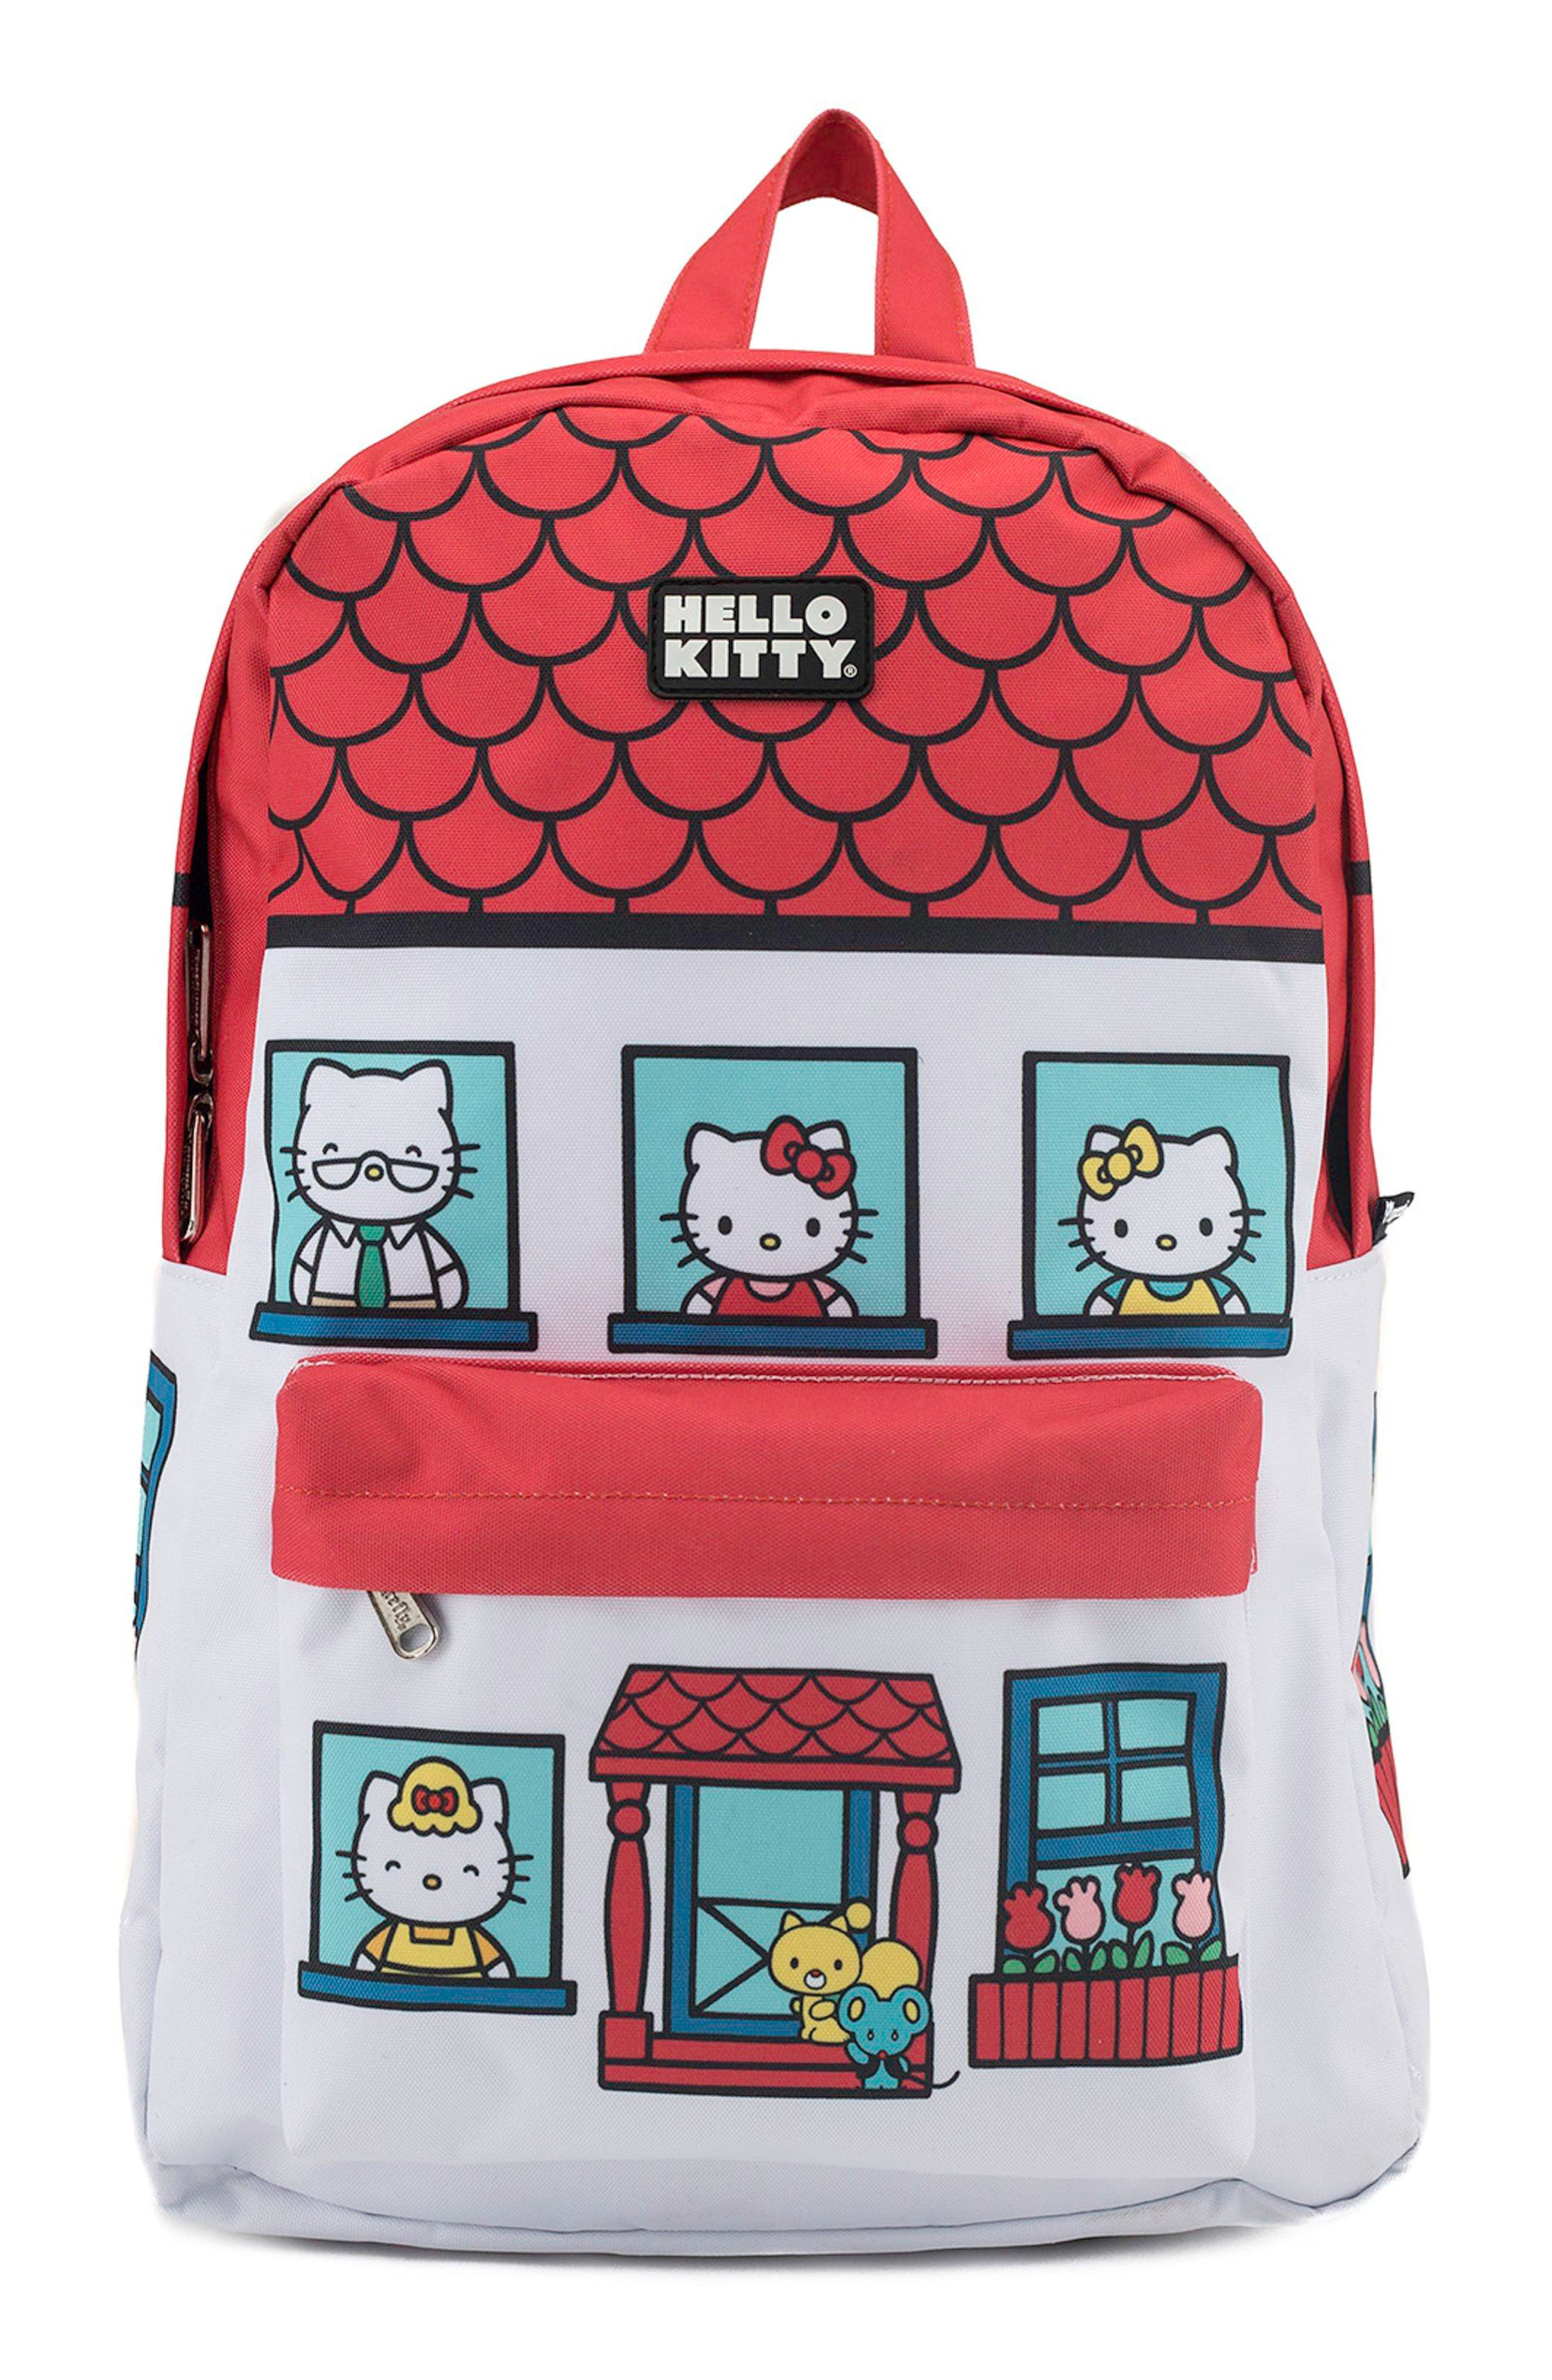 x Hello Kitty House Backpack,                         Main,                         color, 100